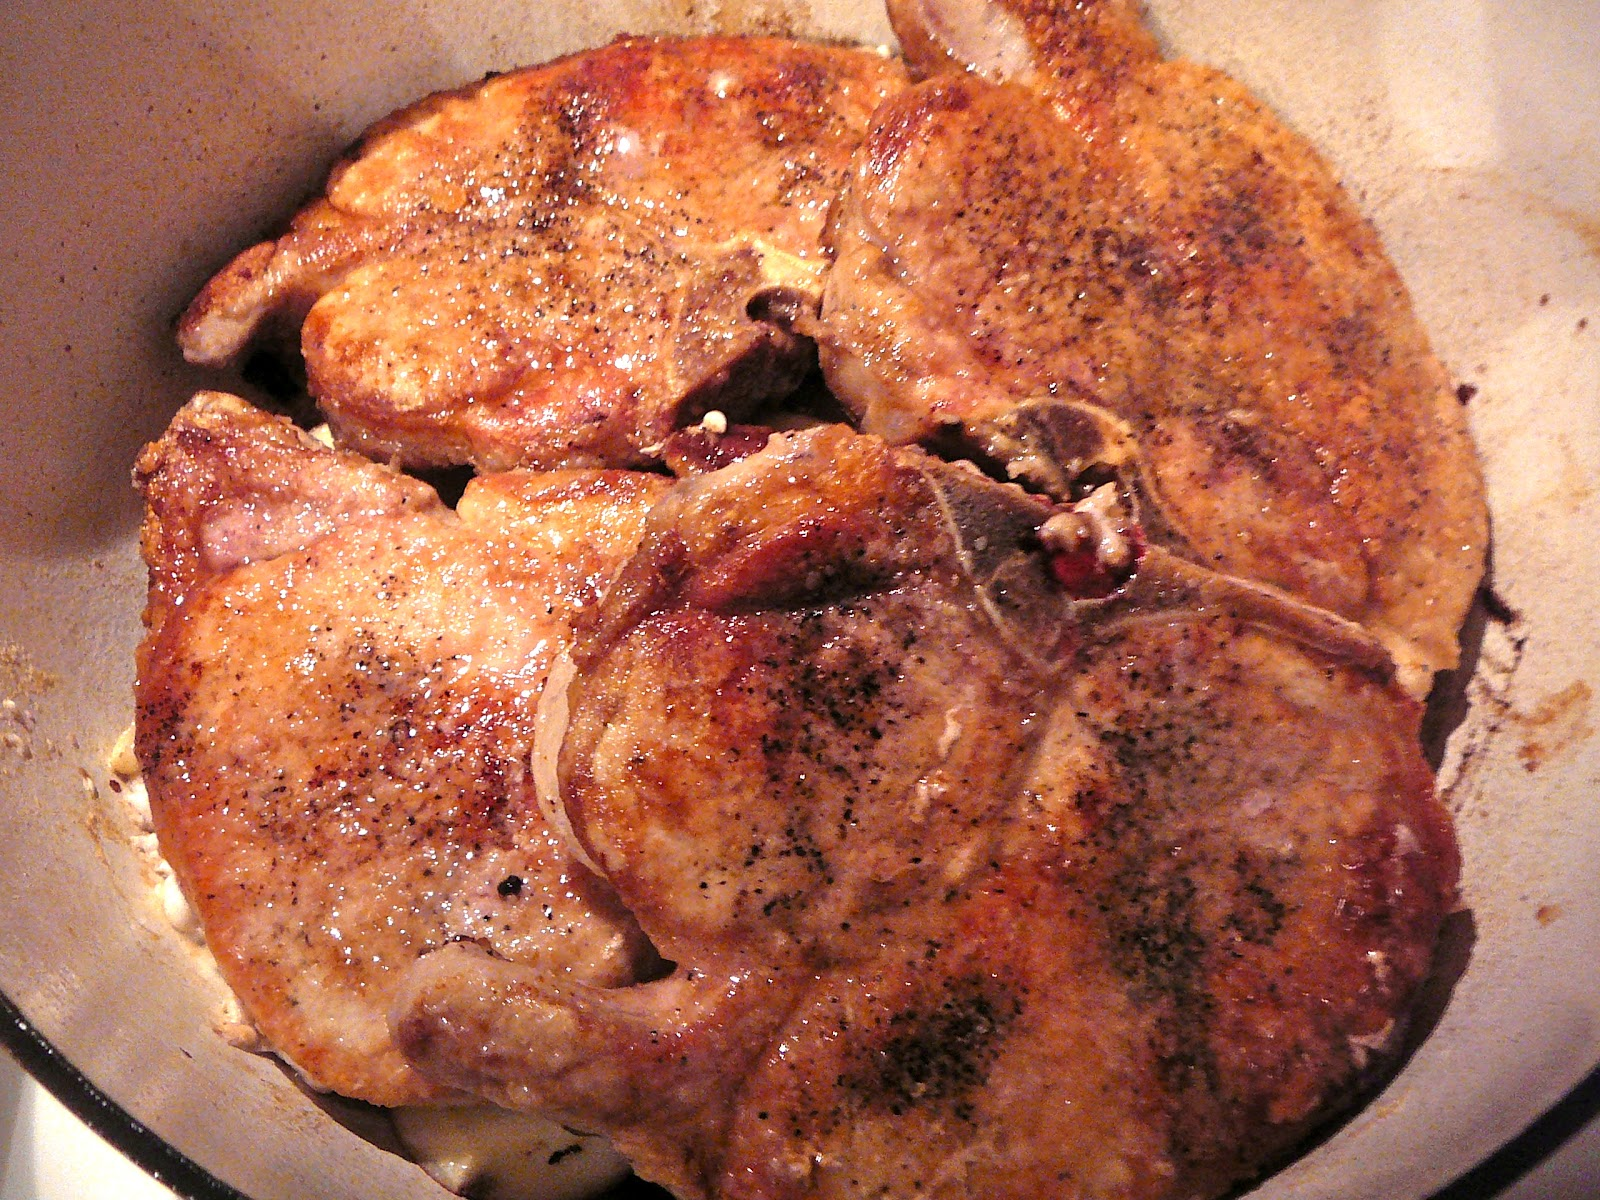 Using A Dutch Oven Heat The Oil And Butter Together In The Bottom Over  Medium High Heat Season And Dredge The Chops In Flour And Brown Them For  34 Minutes